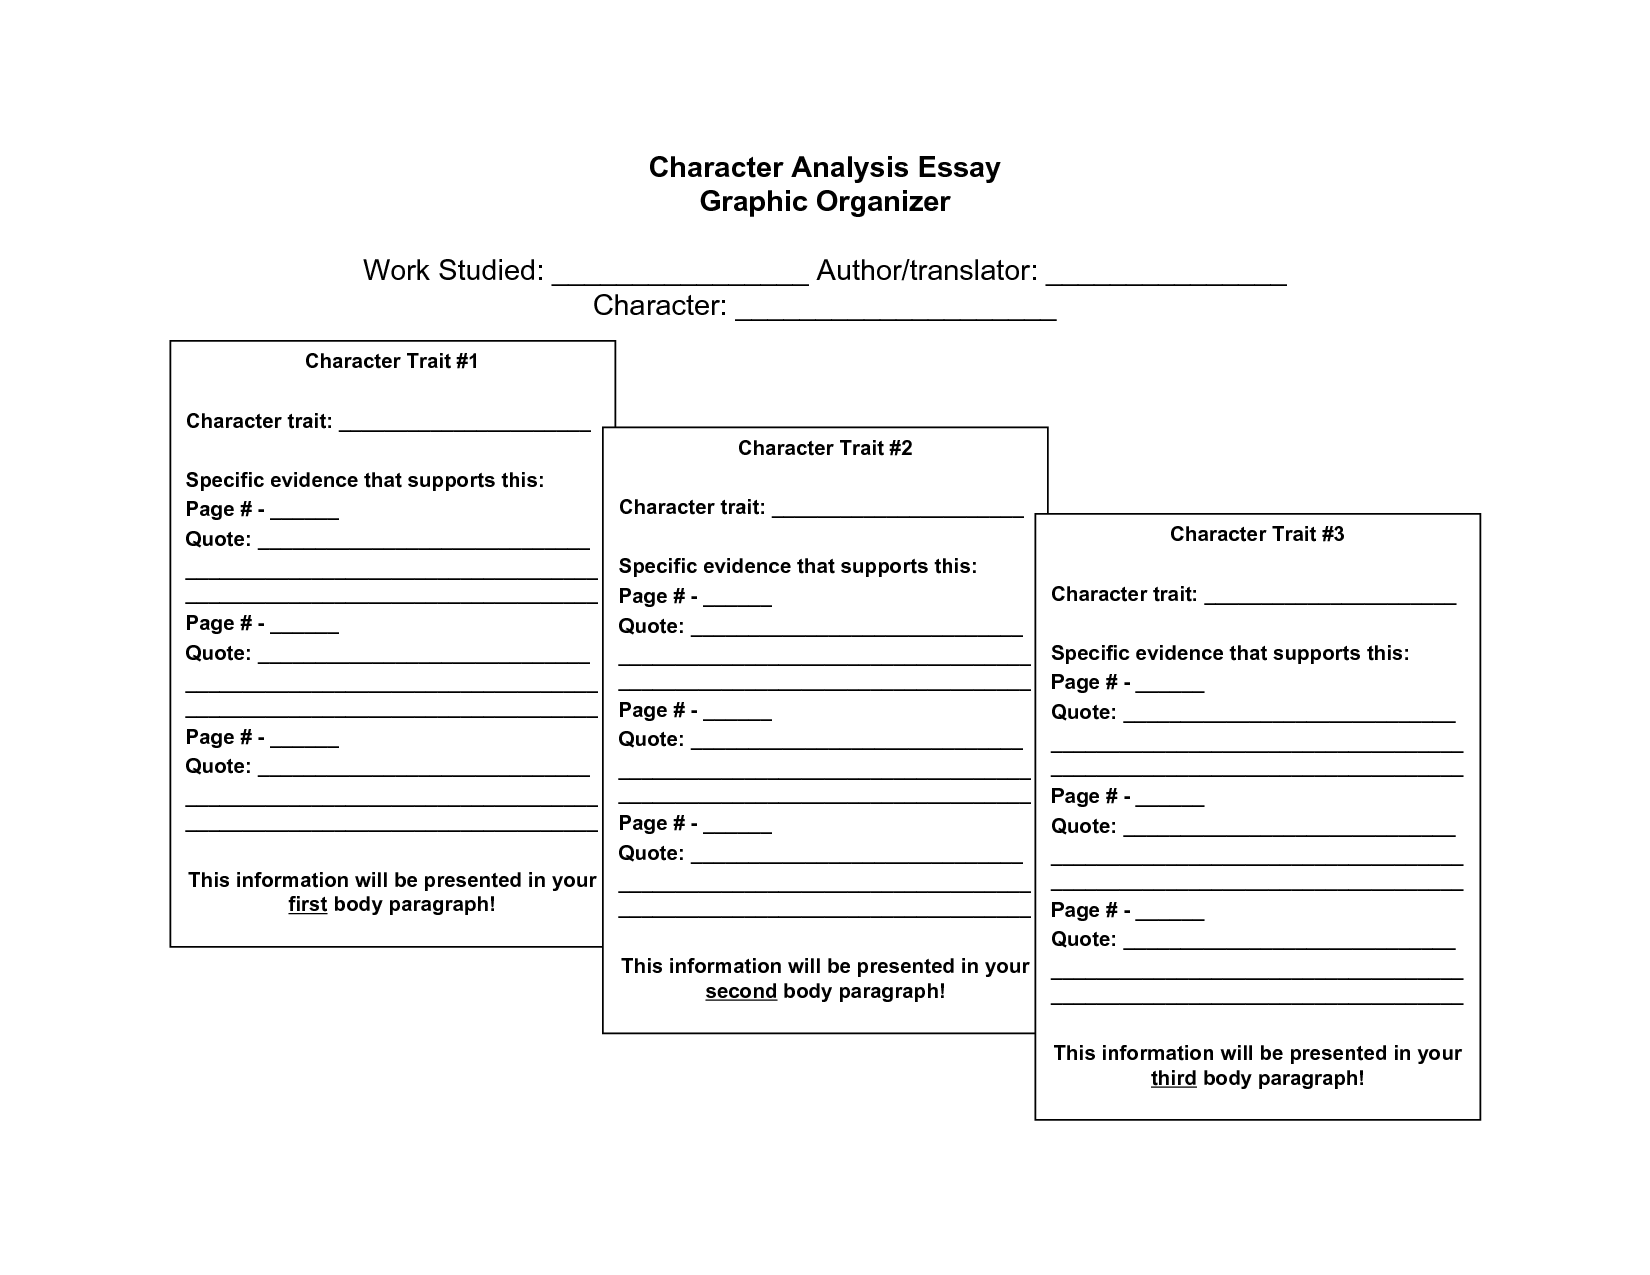 graphic organizers printable character analysis essay graphic graphic organizers printable character analysis essay graphic organizer